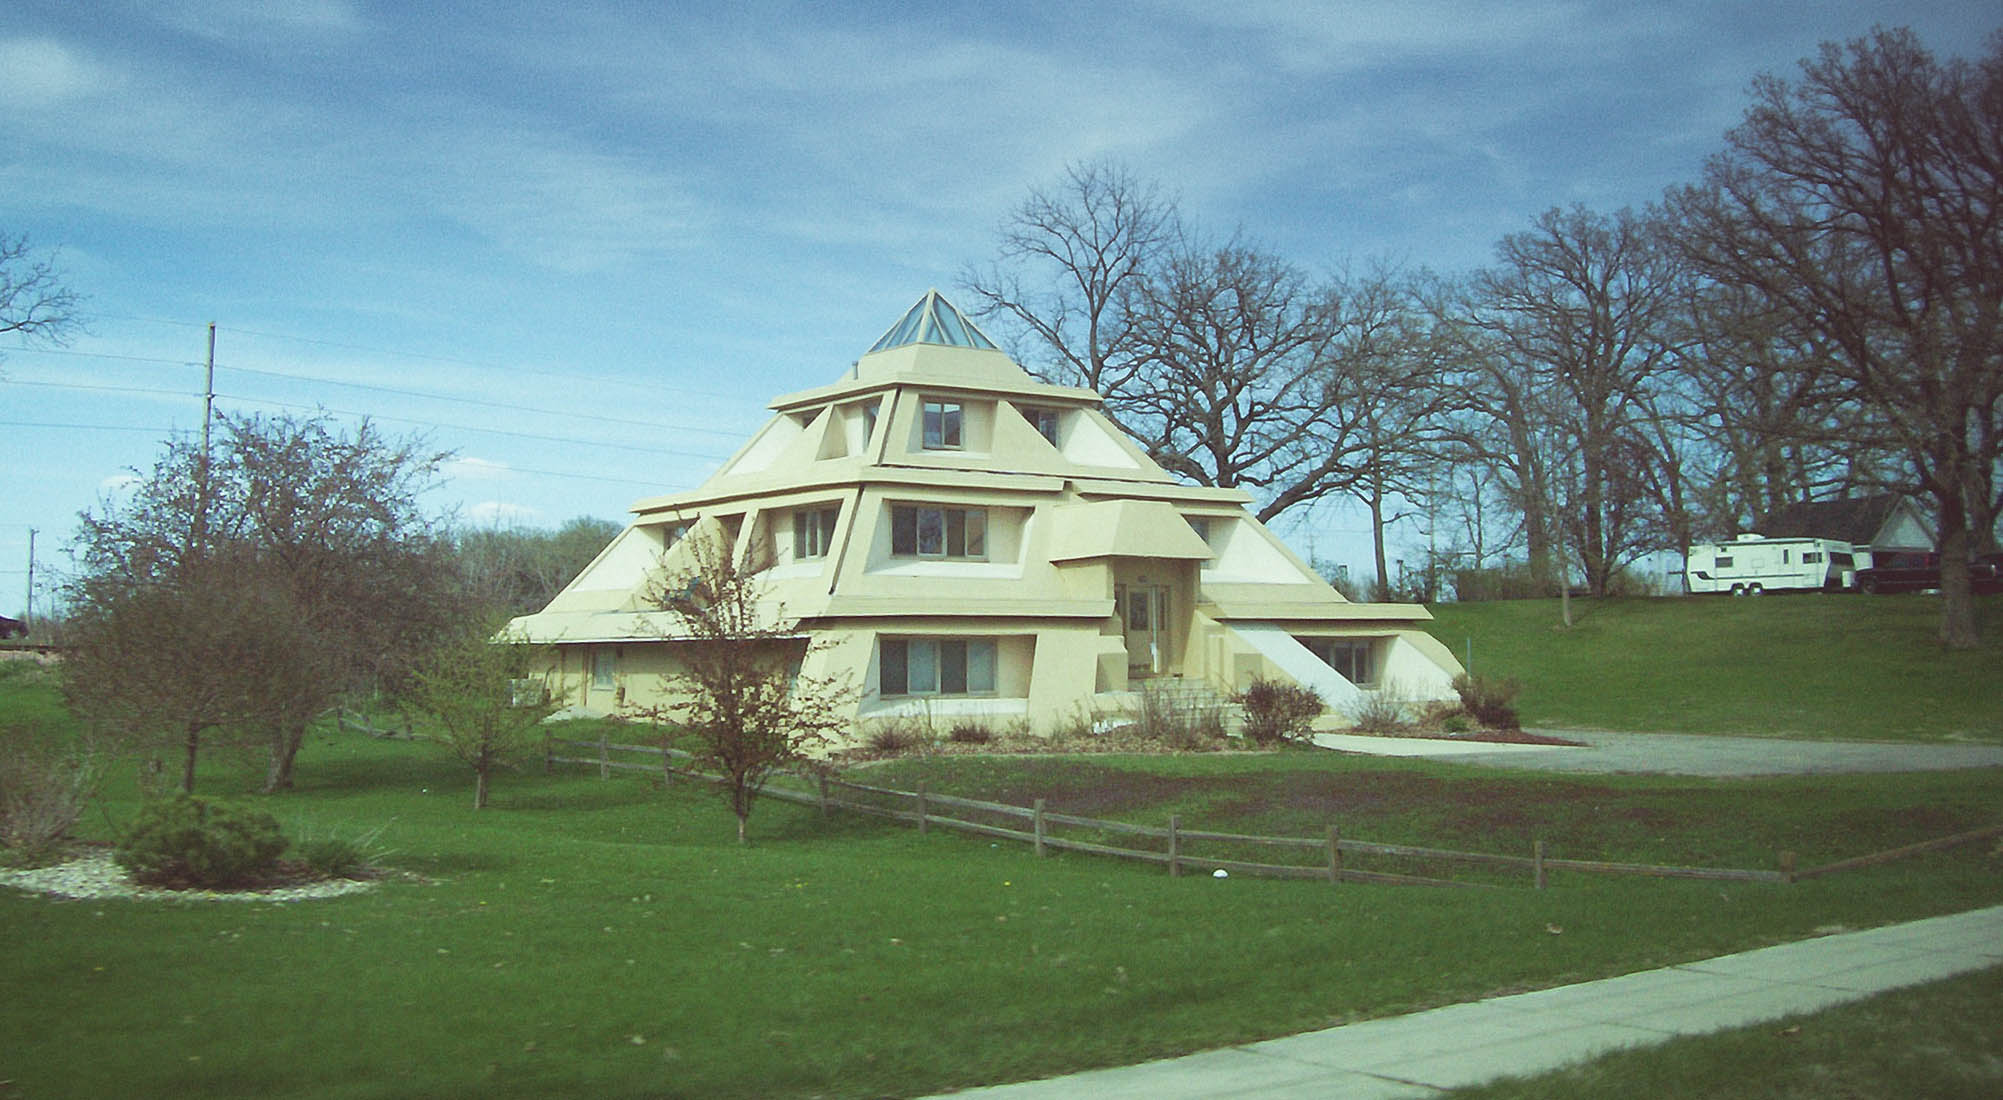 Pyramid Houses Mod The Sims Too Ugly To Live In